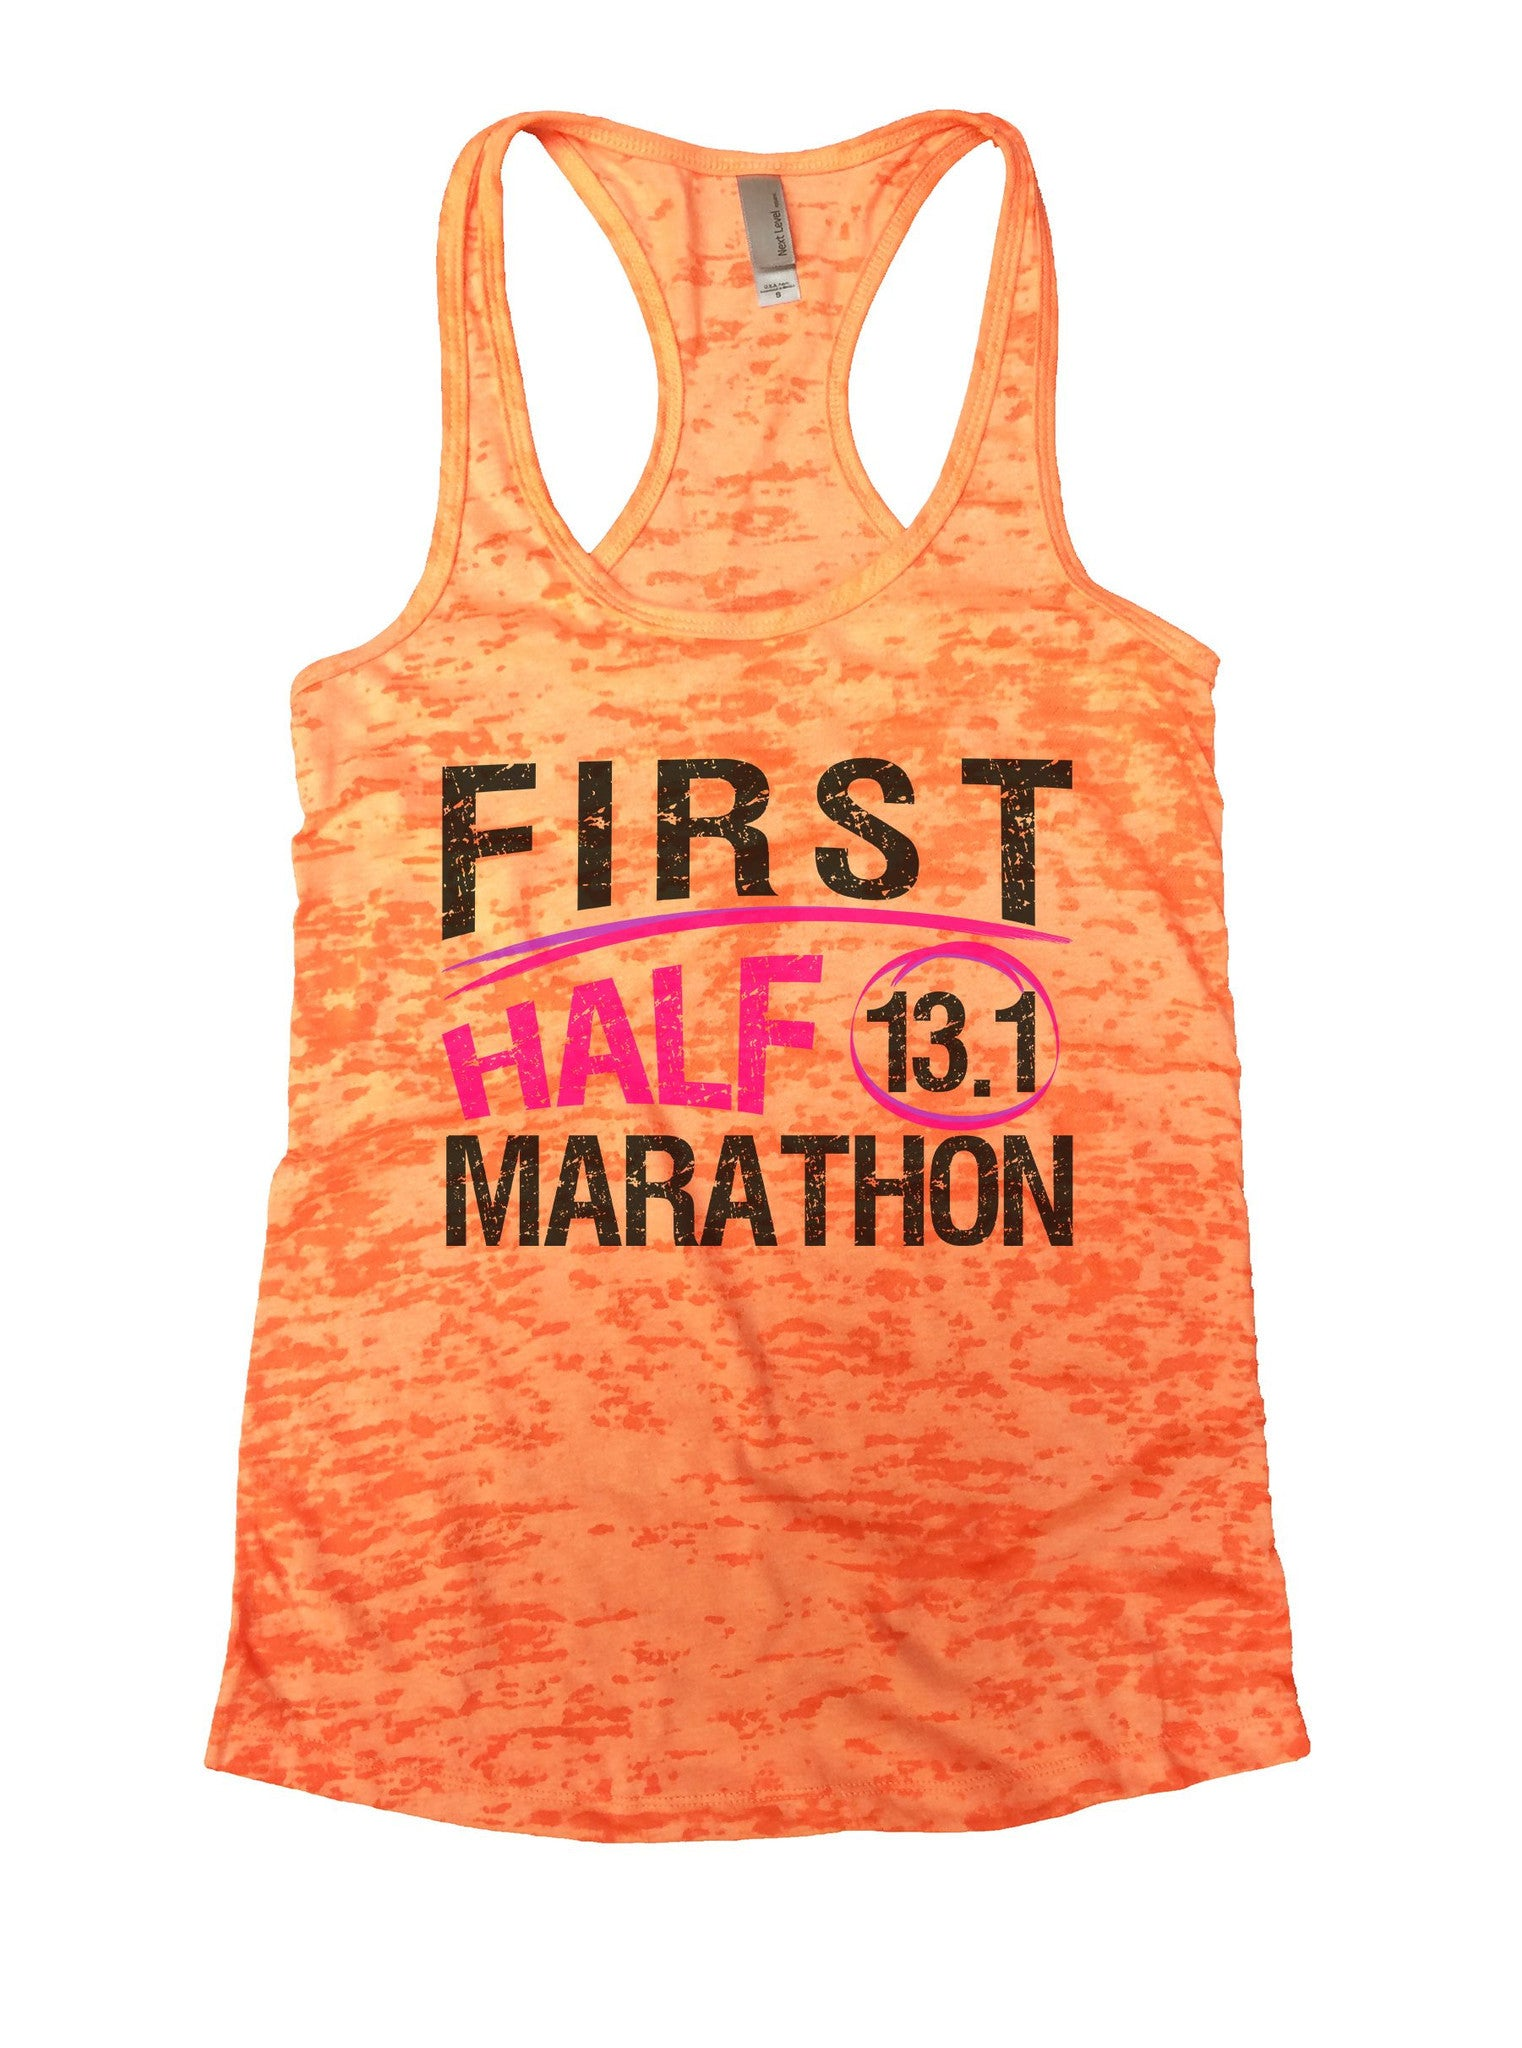 First Half 13.1 Marathon Burnout Tank Top By BurnoutTankTops.com - 1035 - Funny Shirts Tank Tops Burnouts and Triblends  - 3